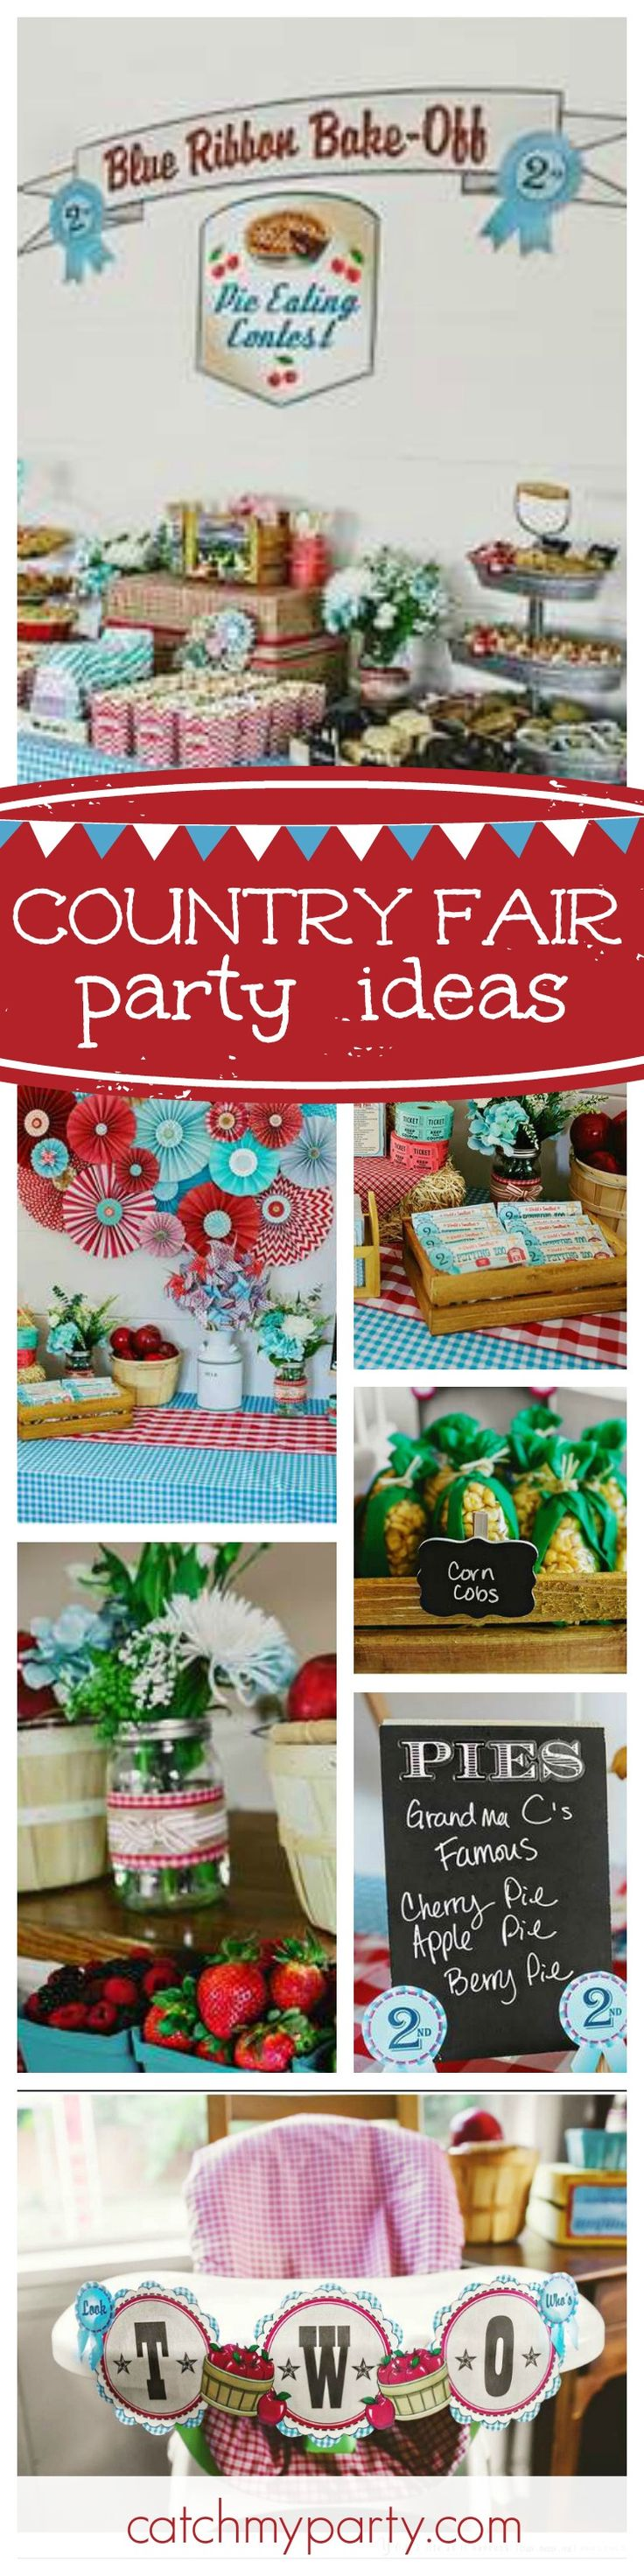 Check out this awesome Country Fair inspired birthday party. Loving the carnival games and prizes!! See more party ideas and share yours at CatchMyParty.com